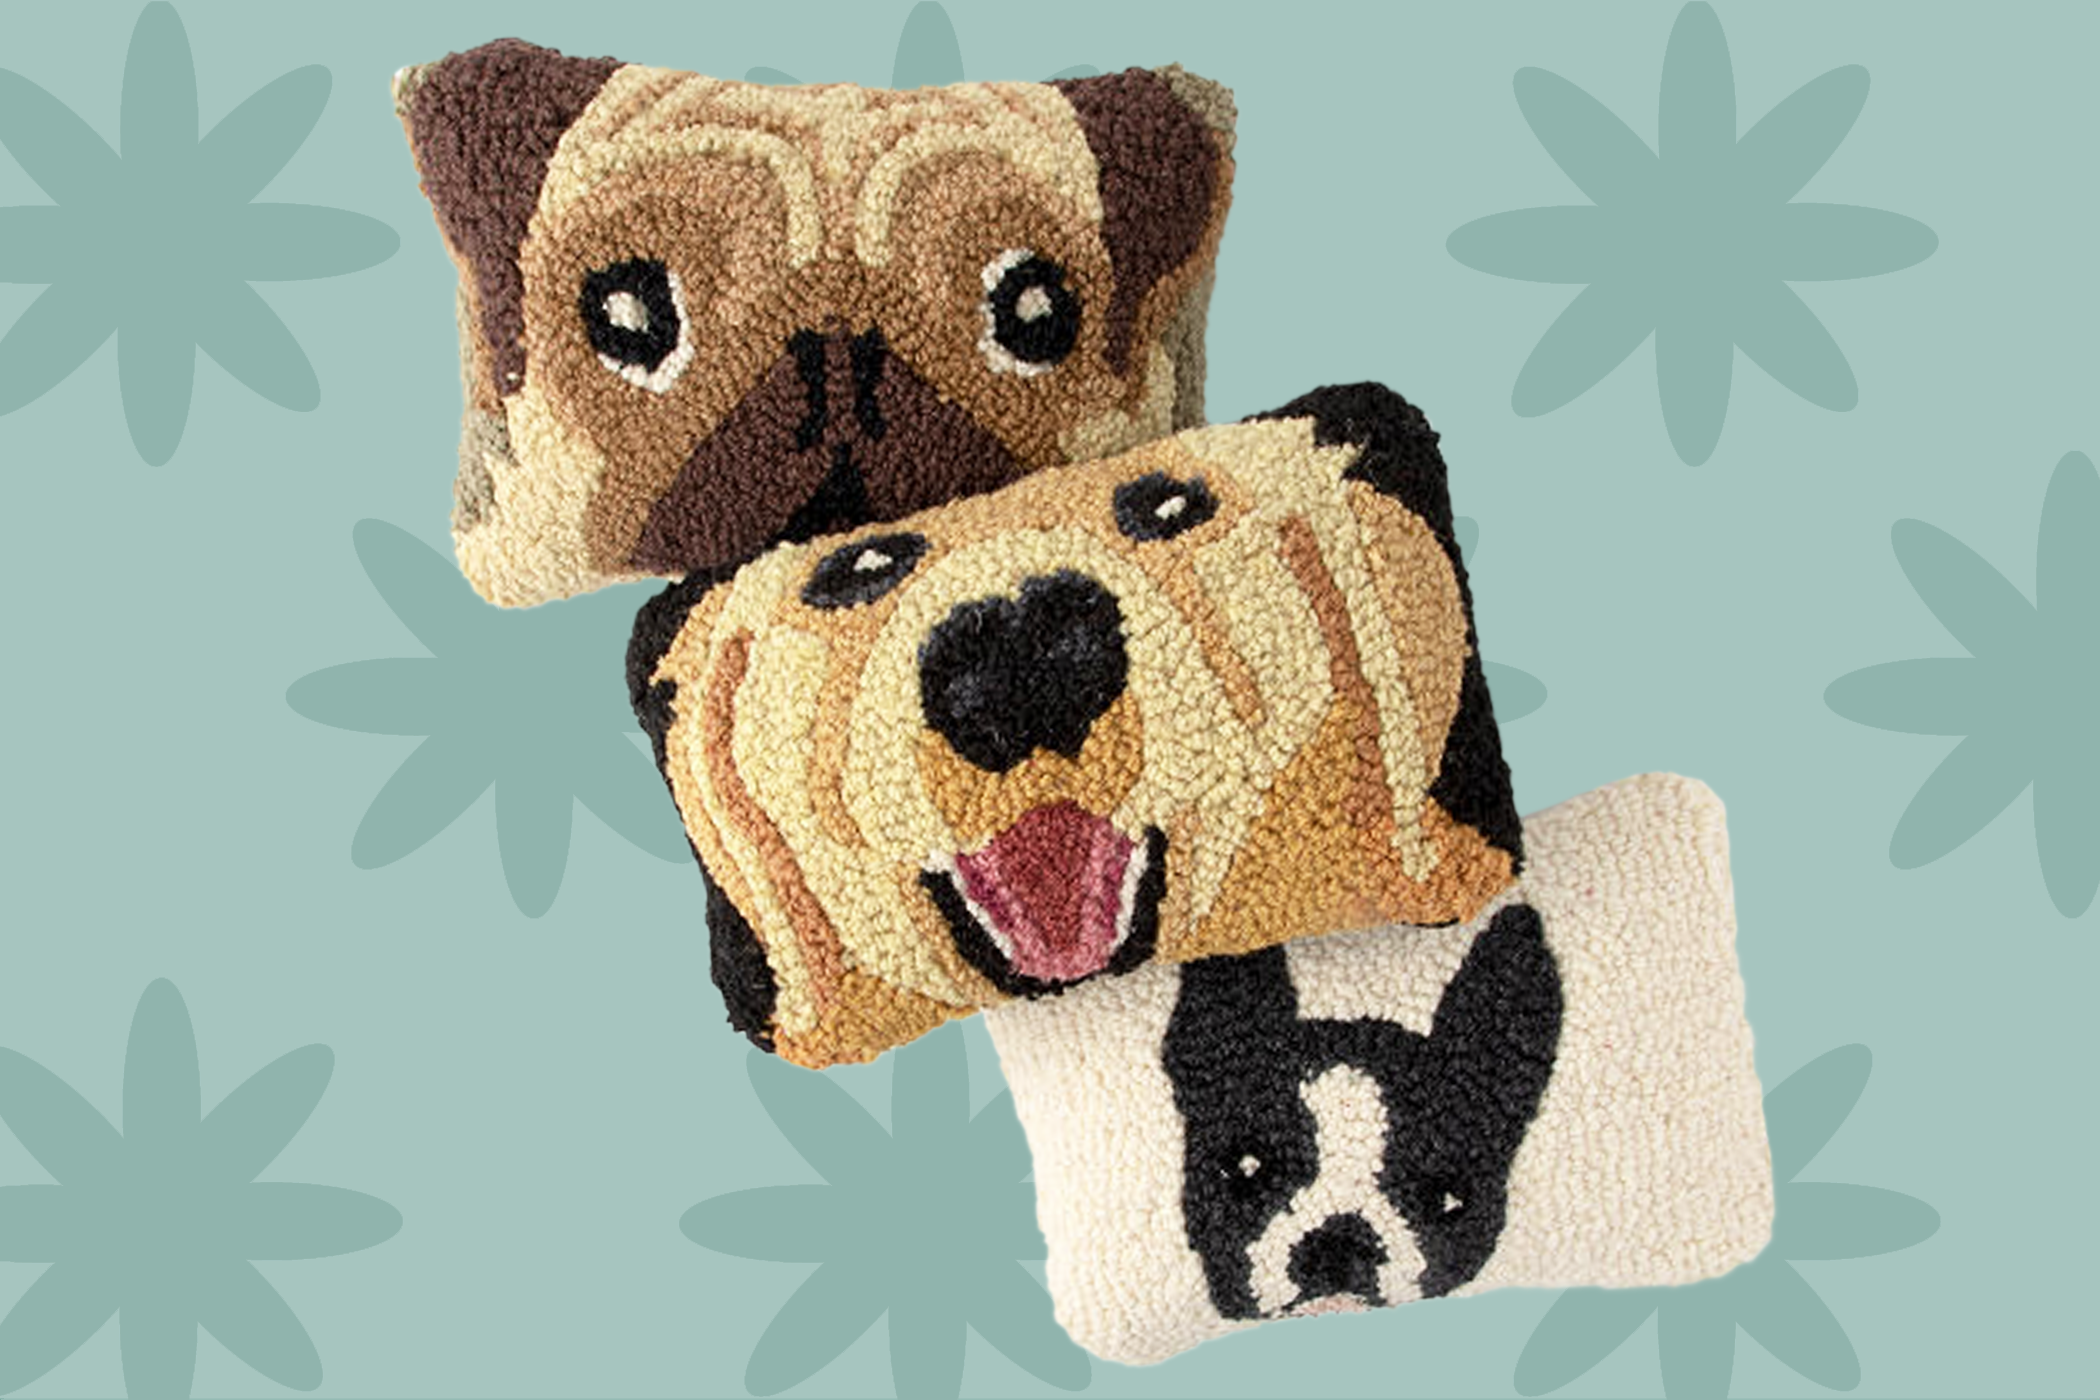 Wool hook-sewn dog faces on pillows